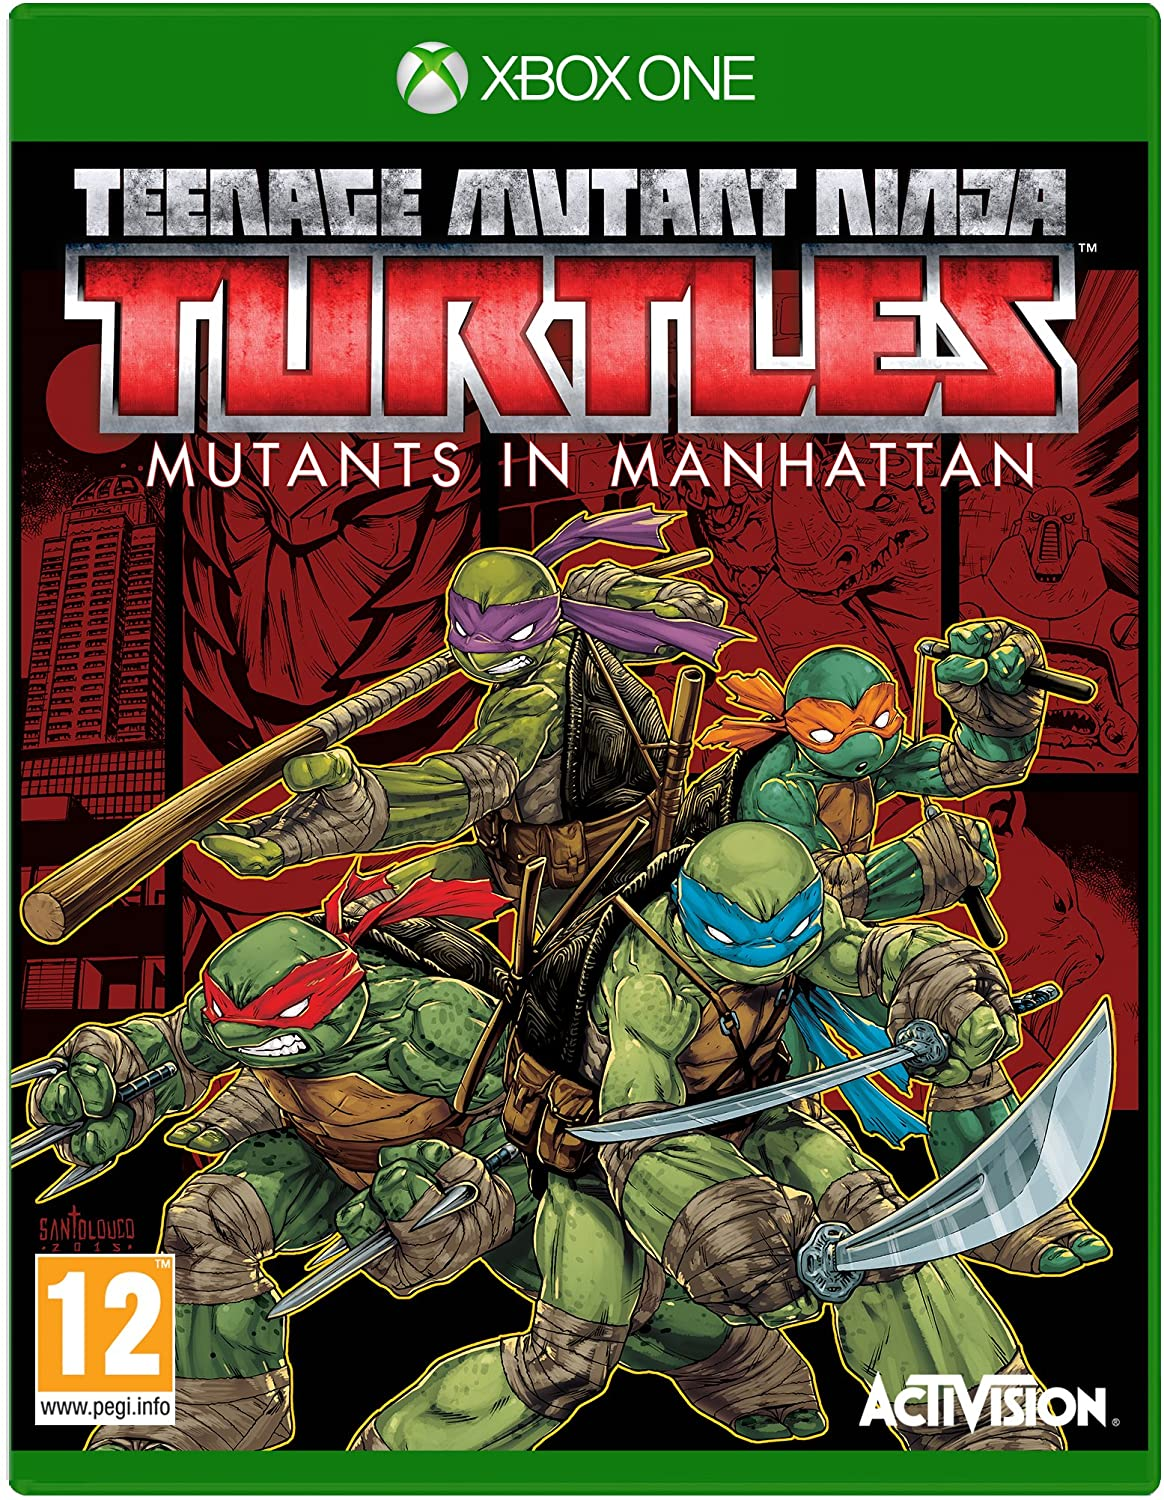 TMNT Teenage Mutant Ninja Turtles Mutants in Manhattan (bazar, XOne) - 559 Kč